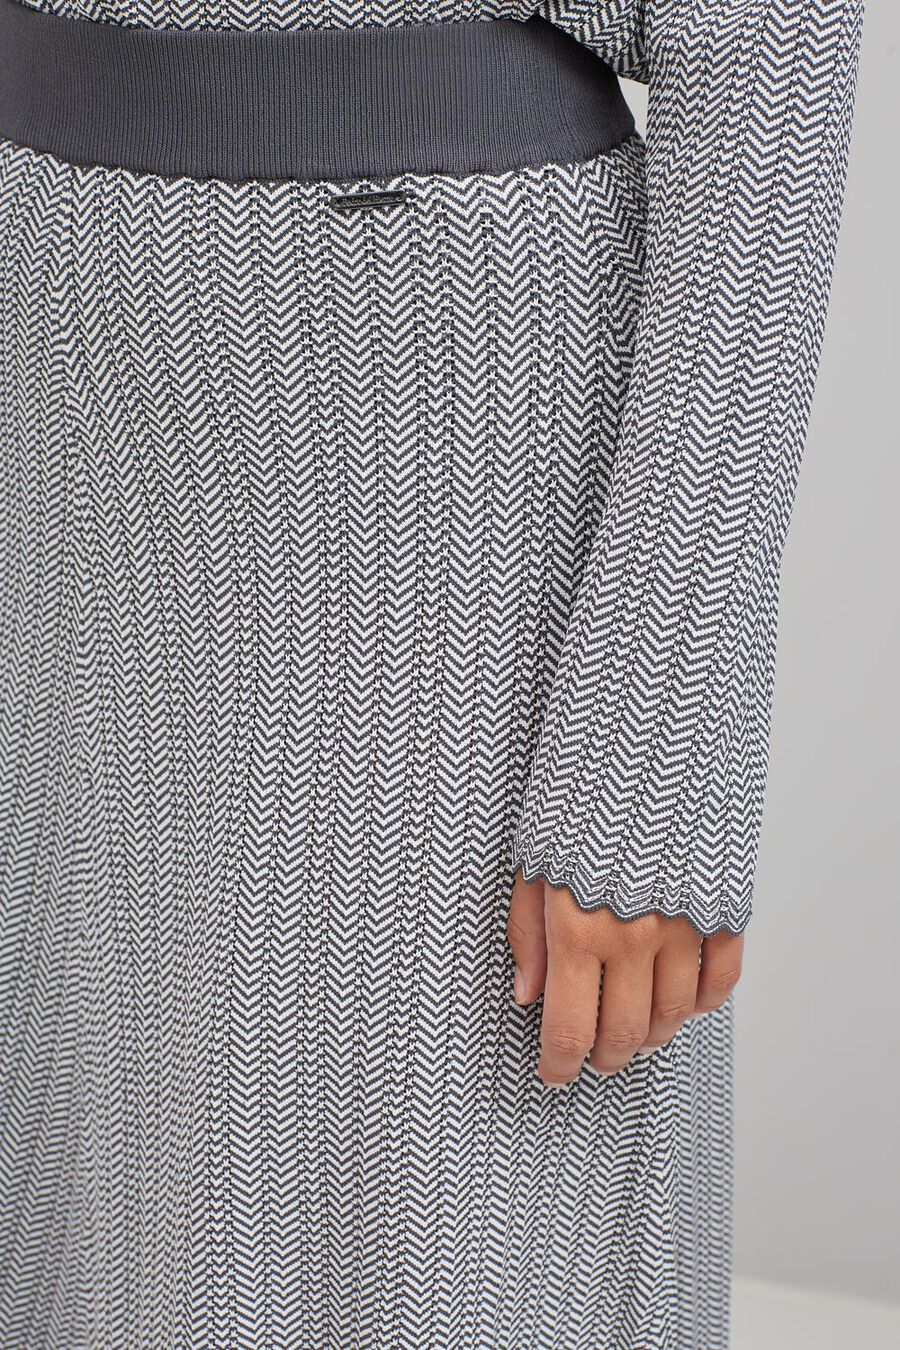 Herringbone knit skirt